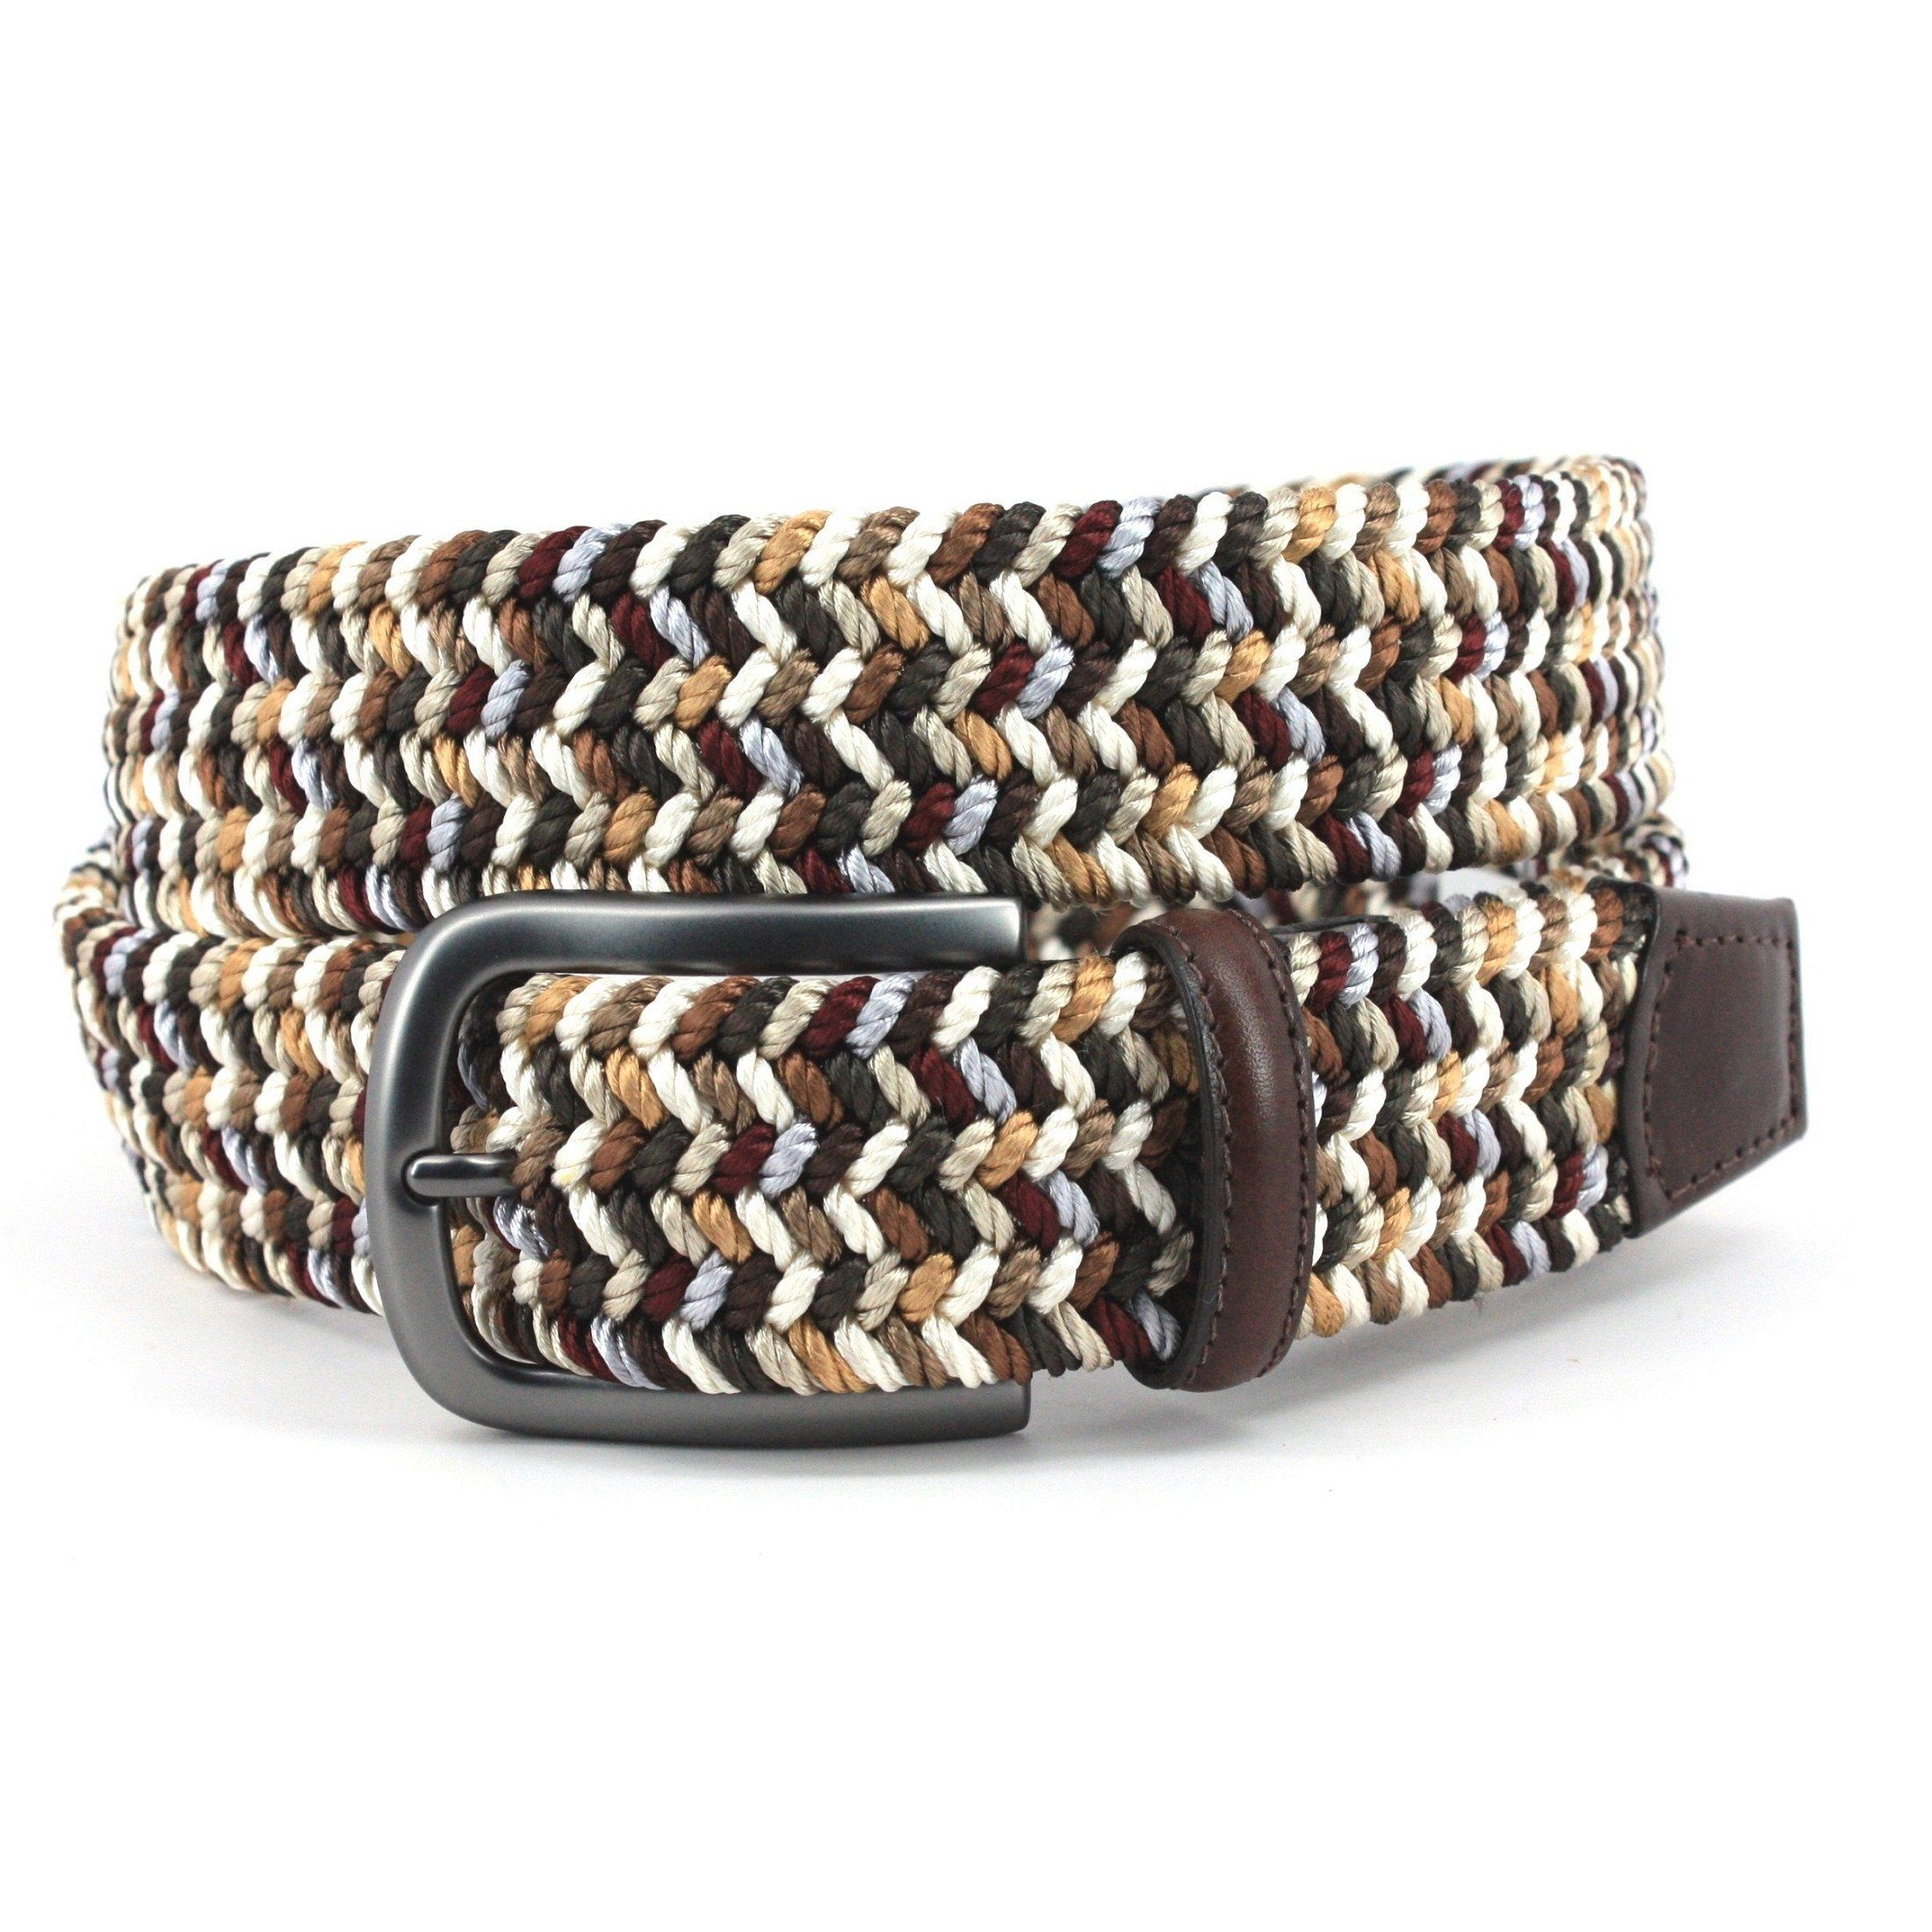 Italian Woven Rayon Elastic- Brown/Camel Multi,BELT,Gent Row, | GentRow.com